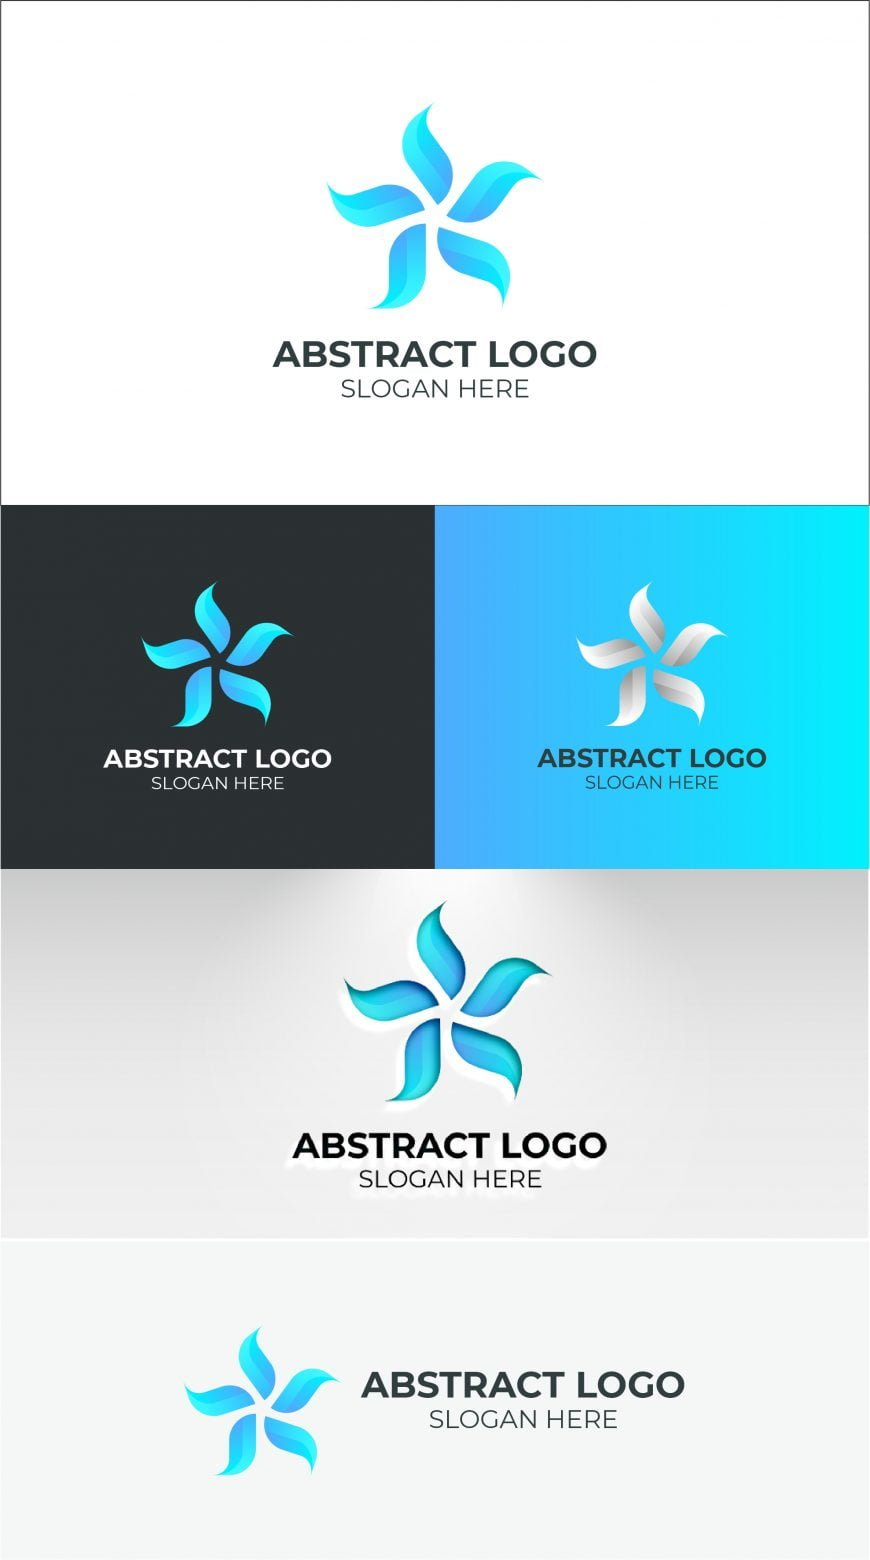 ABSTRACT-LOGO-scaled